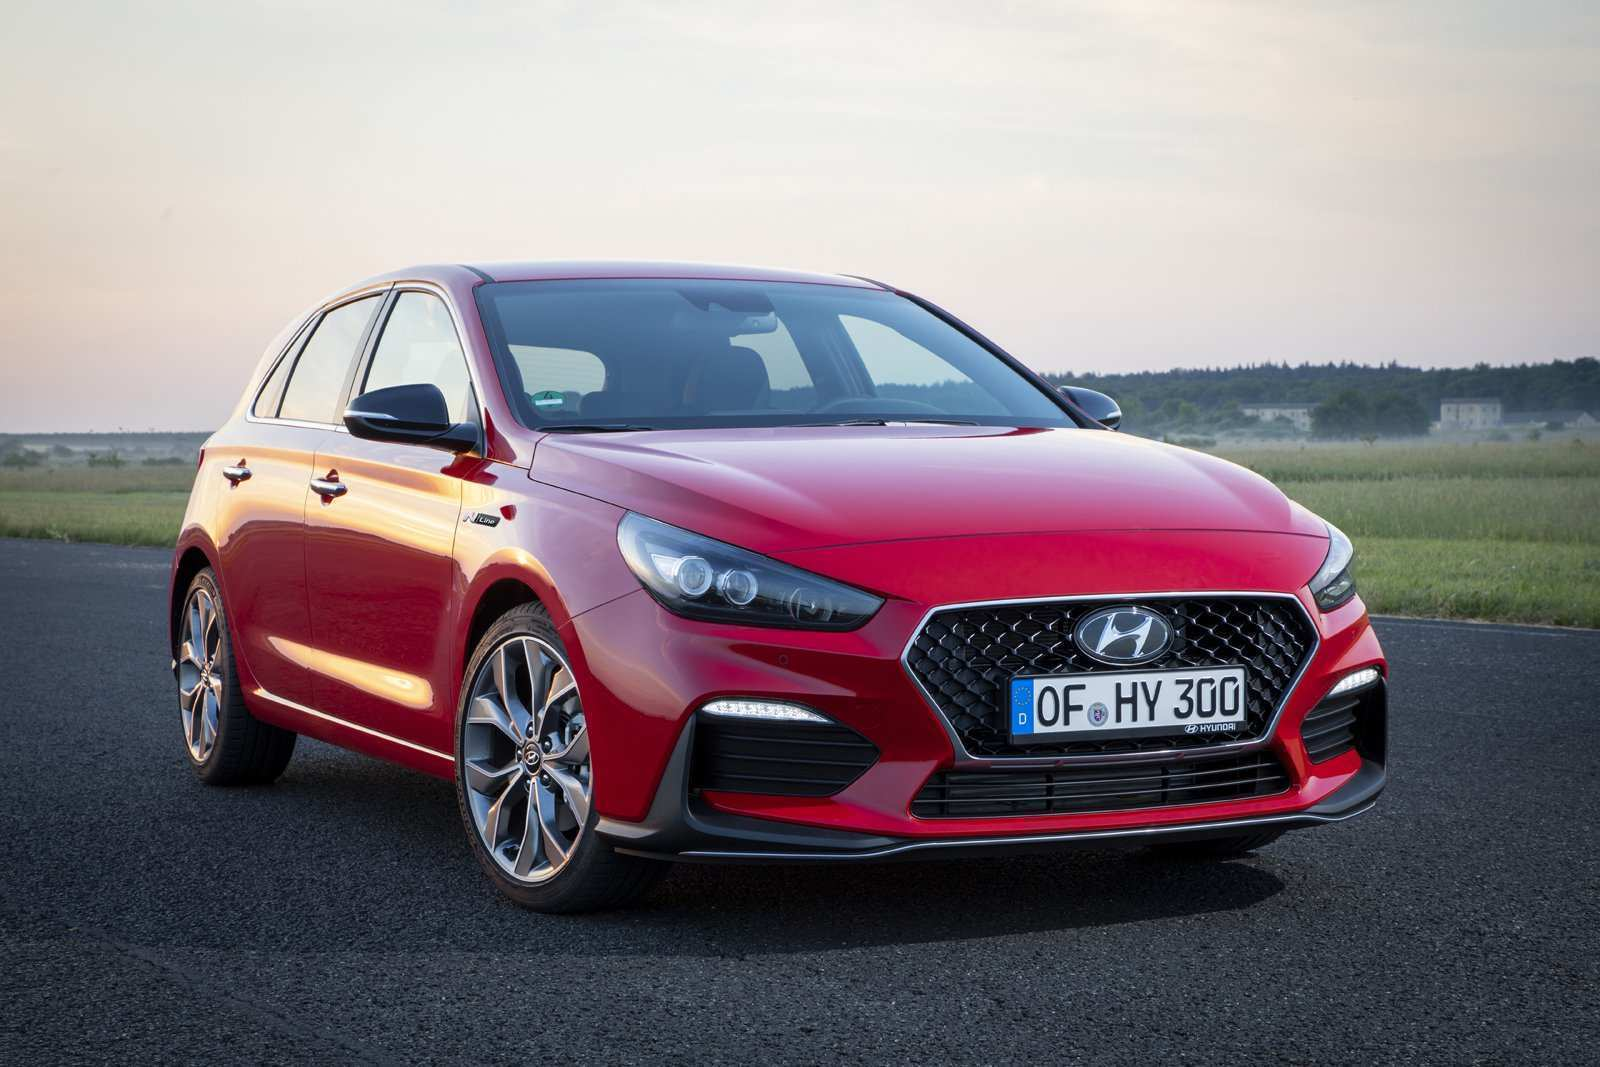 63 All New 2019 Hyundai Elantra Gt Pricing